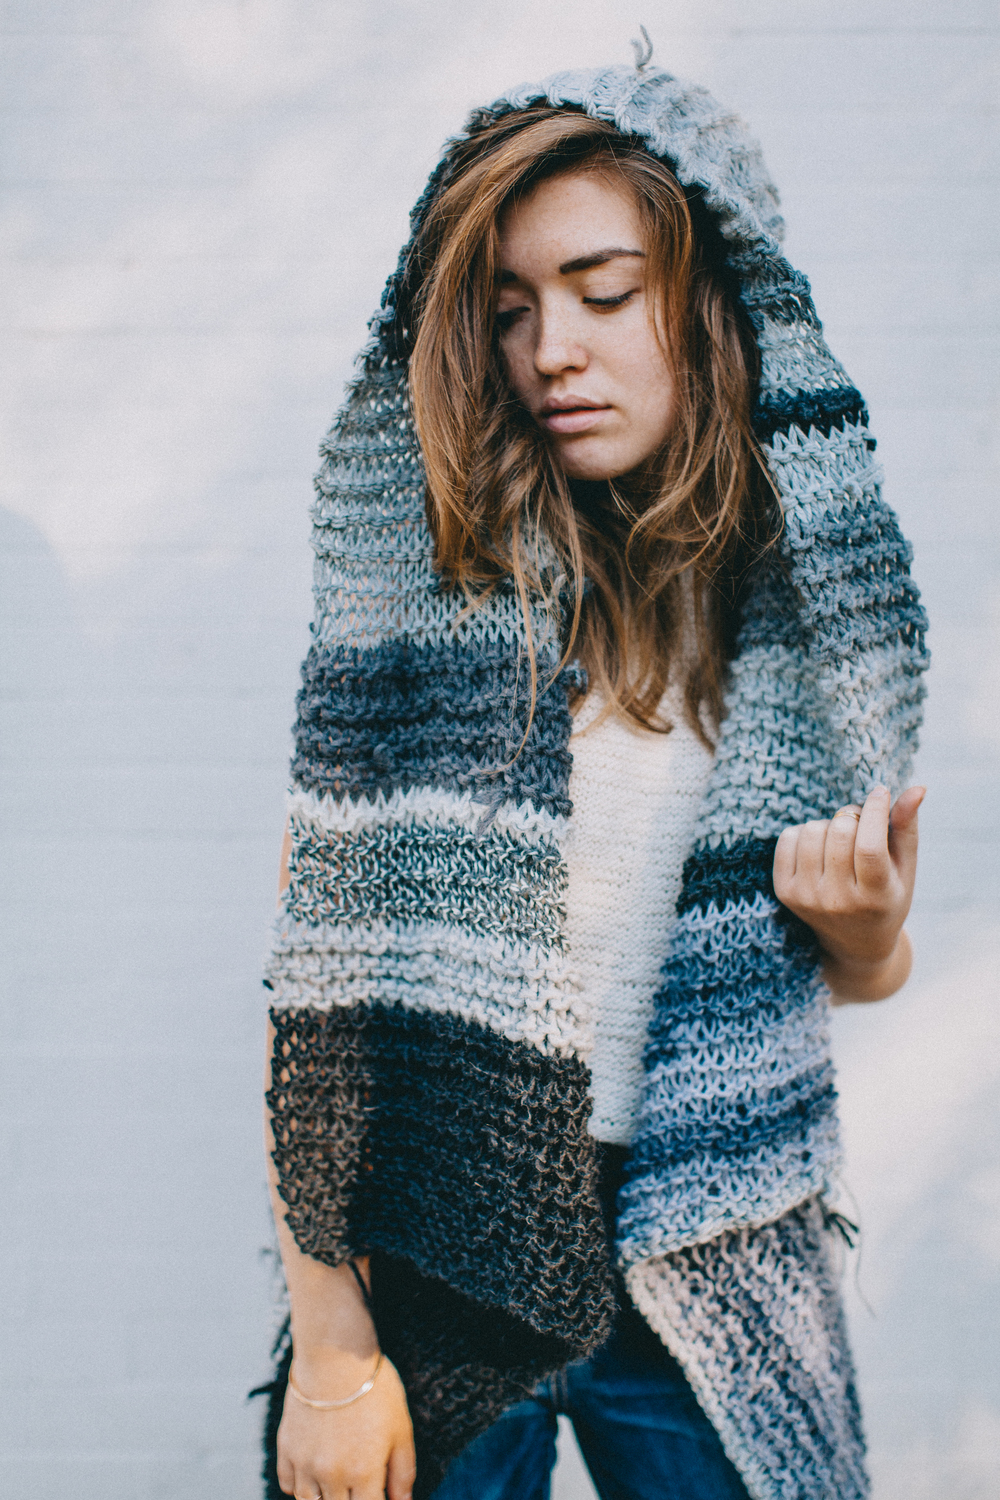 OOAK Knitwear By A Girl Named Leney / www.agirlnamedleney.com